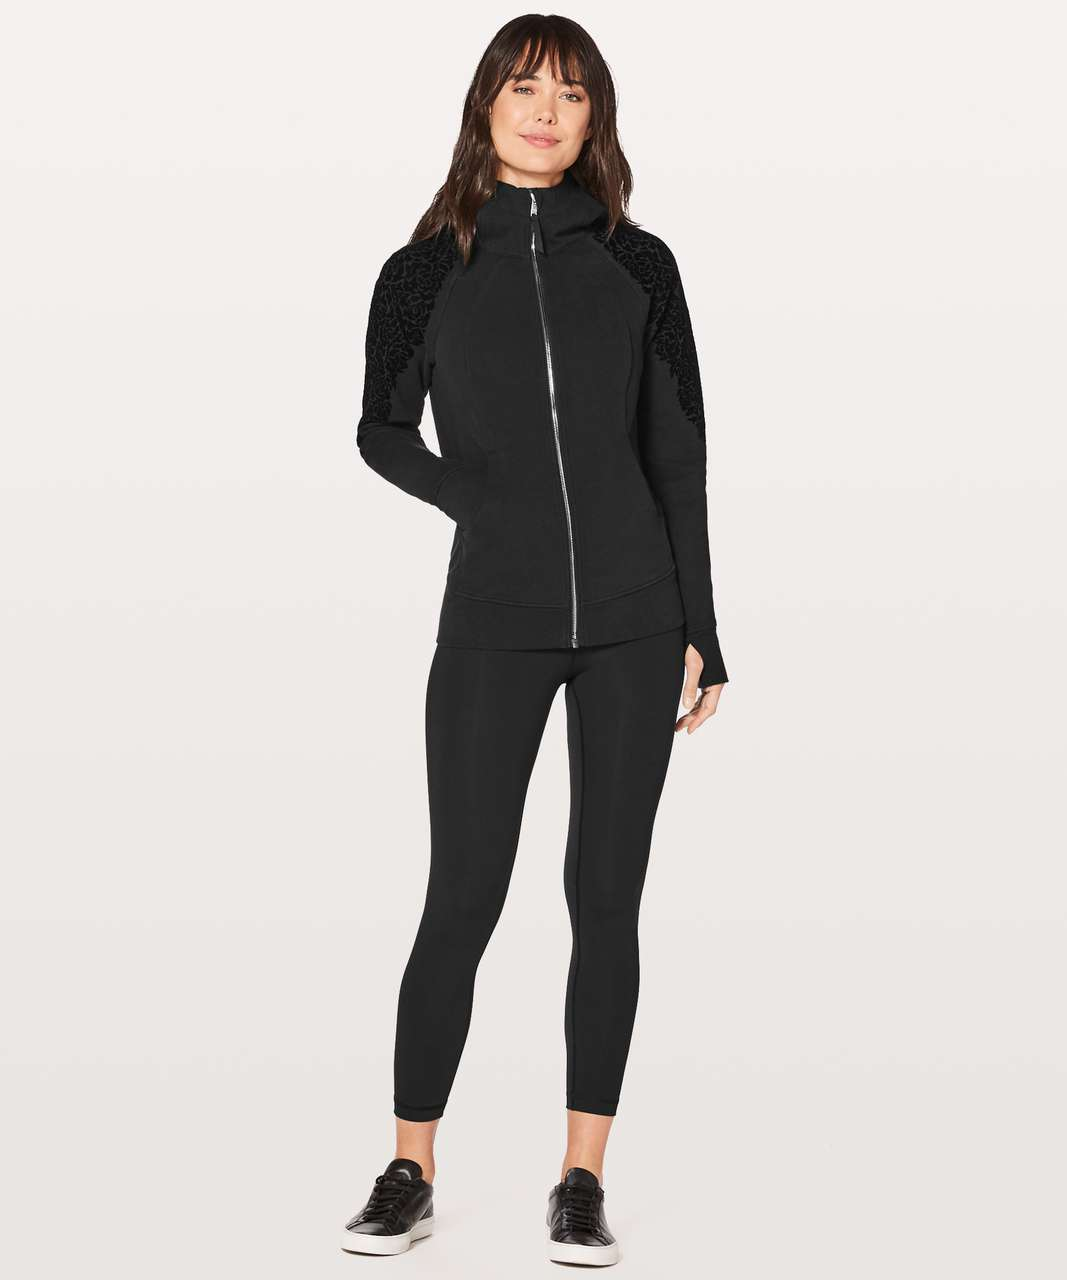 Lululemon Scuba Hoodie Light Cotton Fleece (Floral Flock) - Black